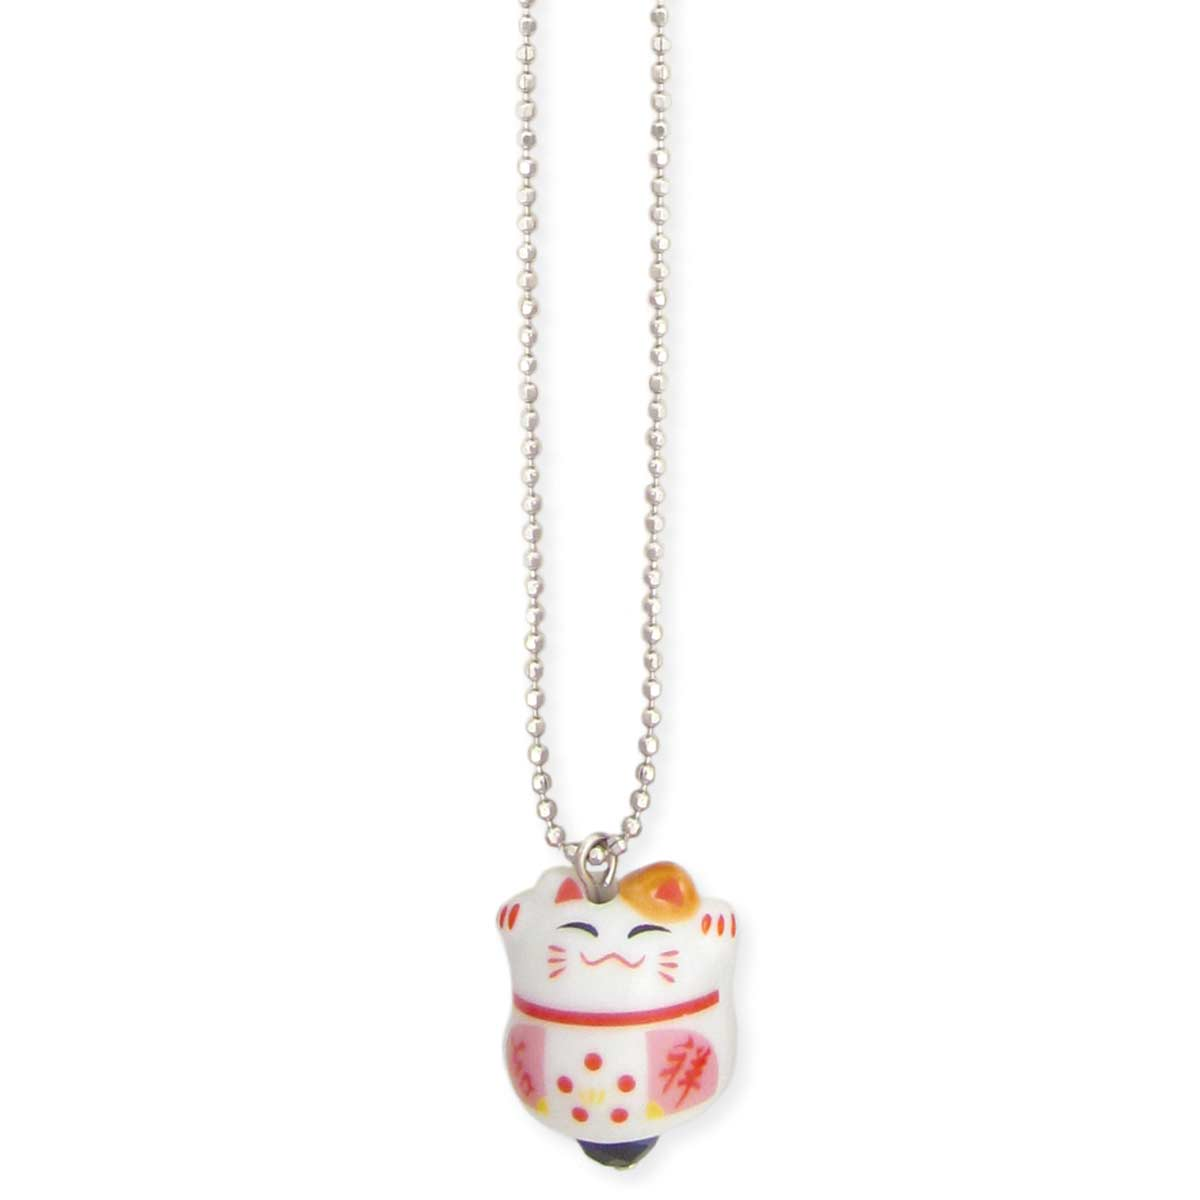 fashion jewelry pendant lucky costume trend pp cat zad necklace wholesale ceramic